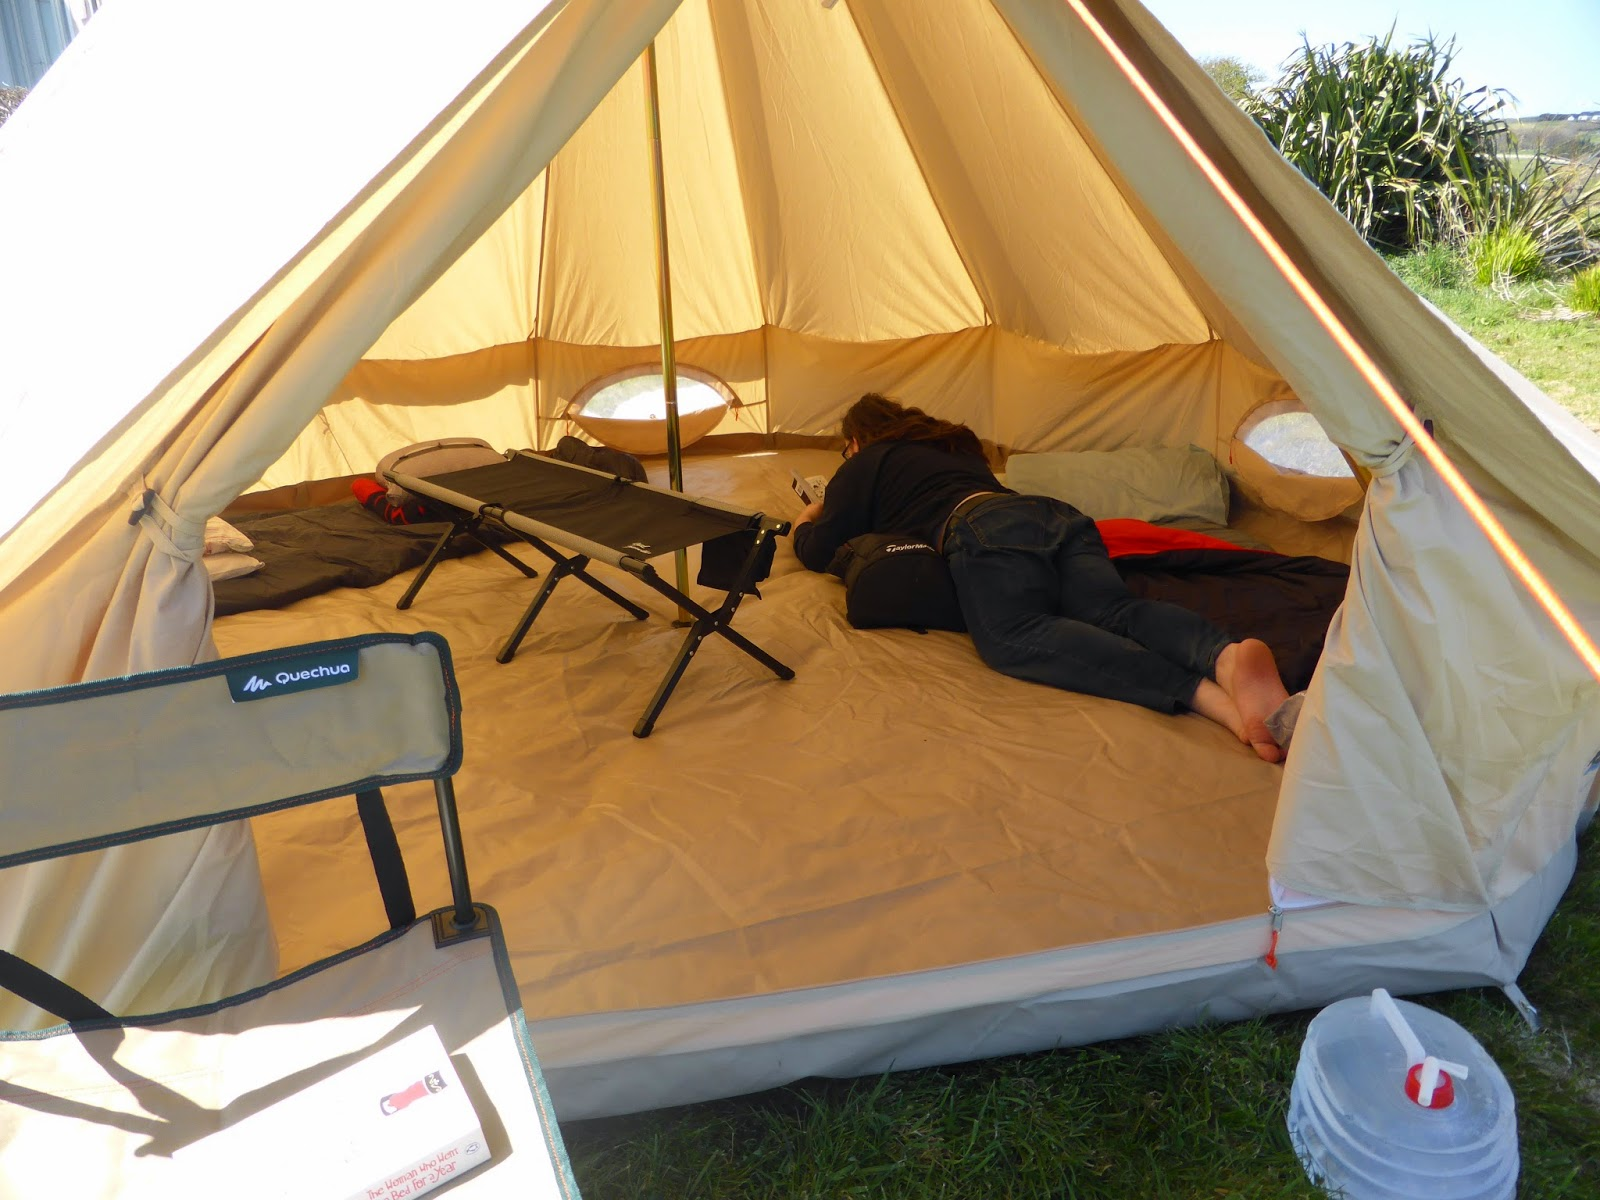 I took it away for a main family fortnight holiday which was a risk because if this Bell Tent was going to get on my nerves two weeks in the rain in ... & Campervic: Bell Tent thoughts